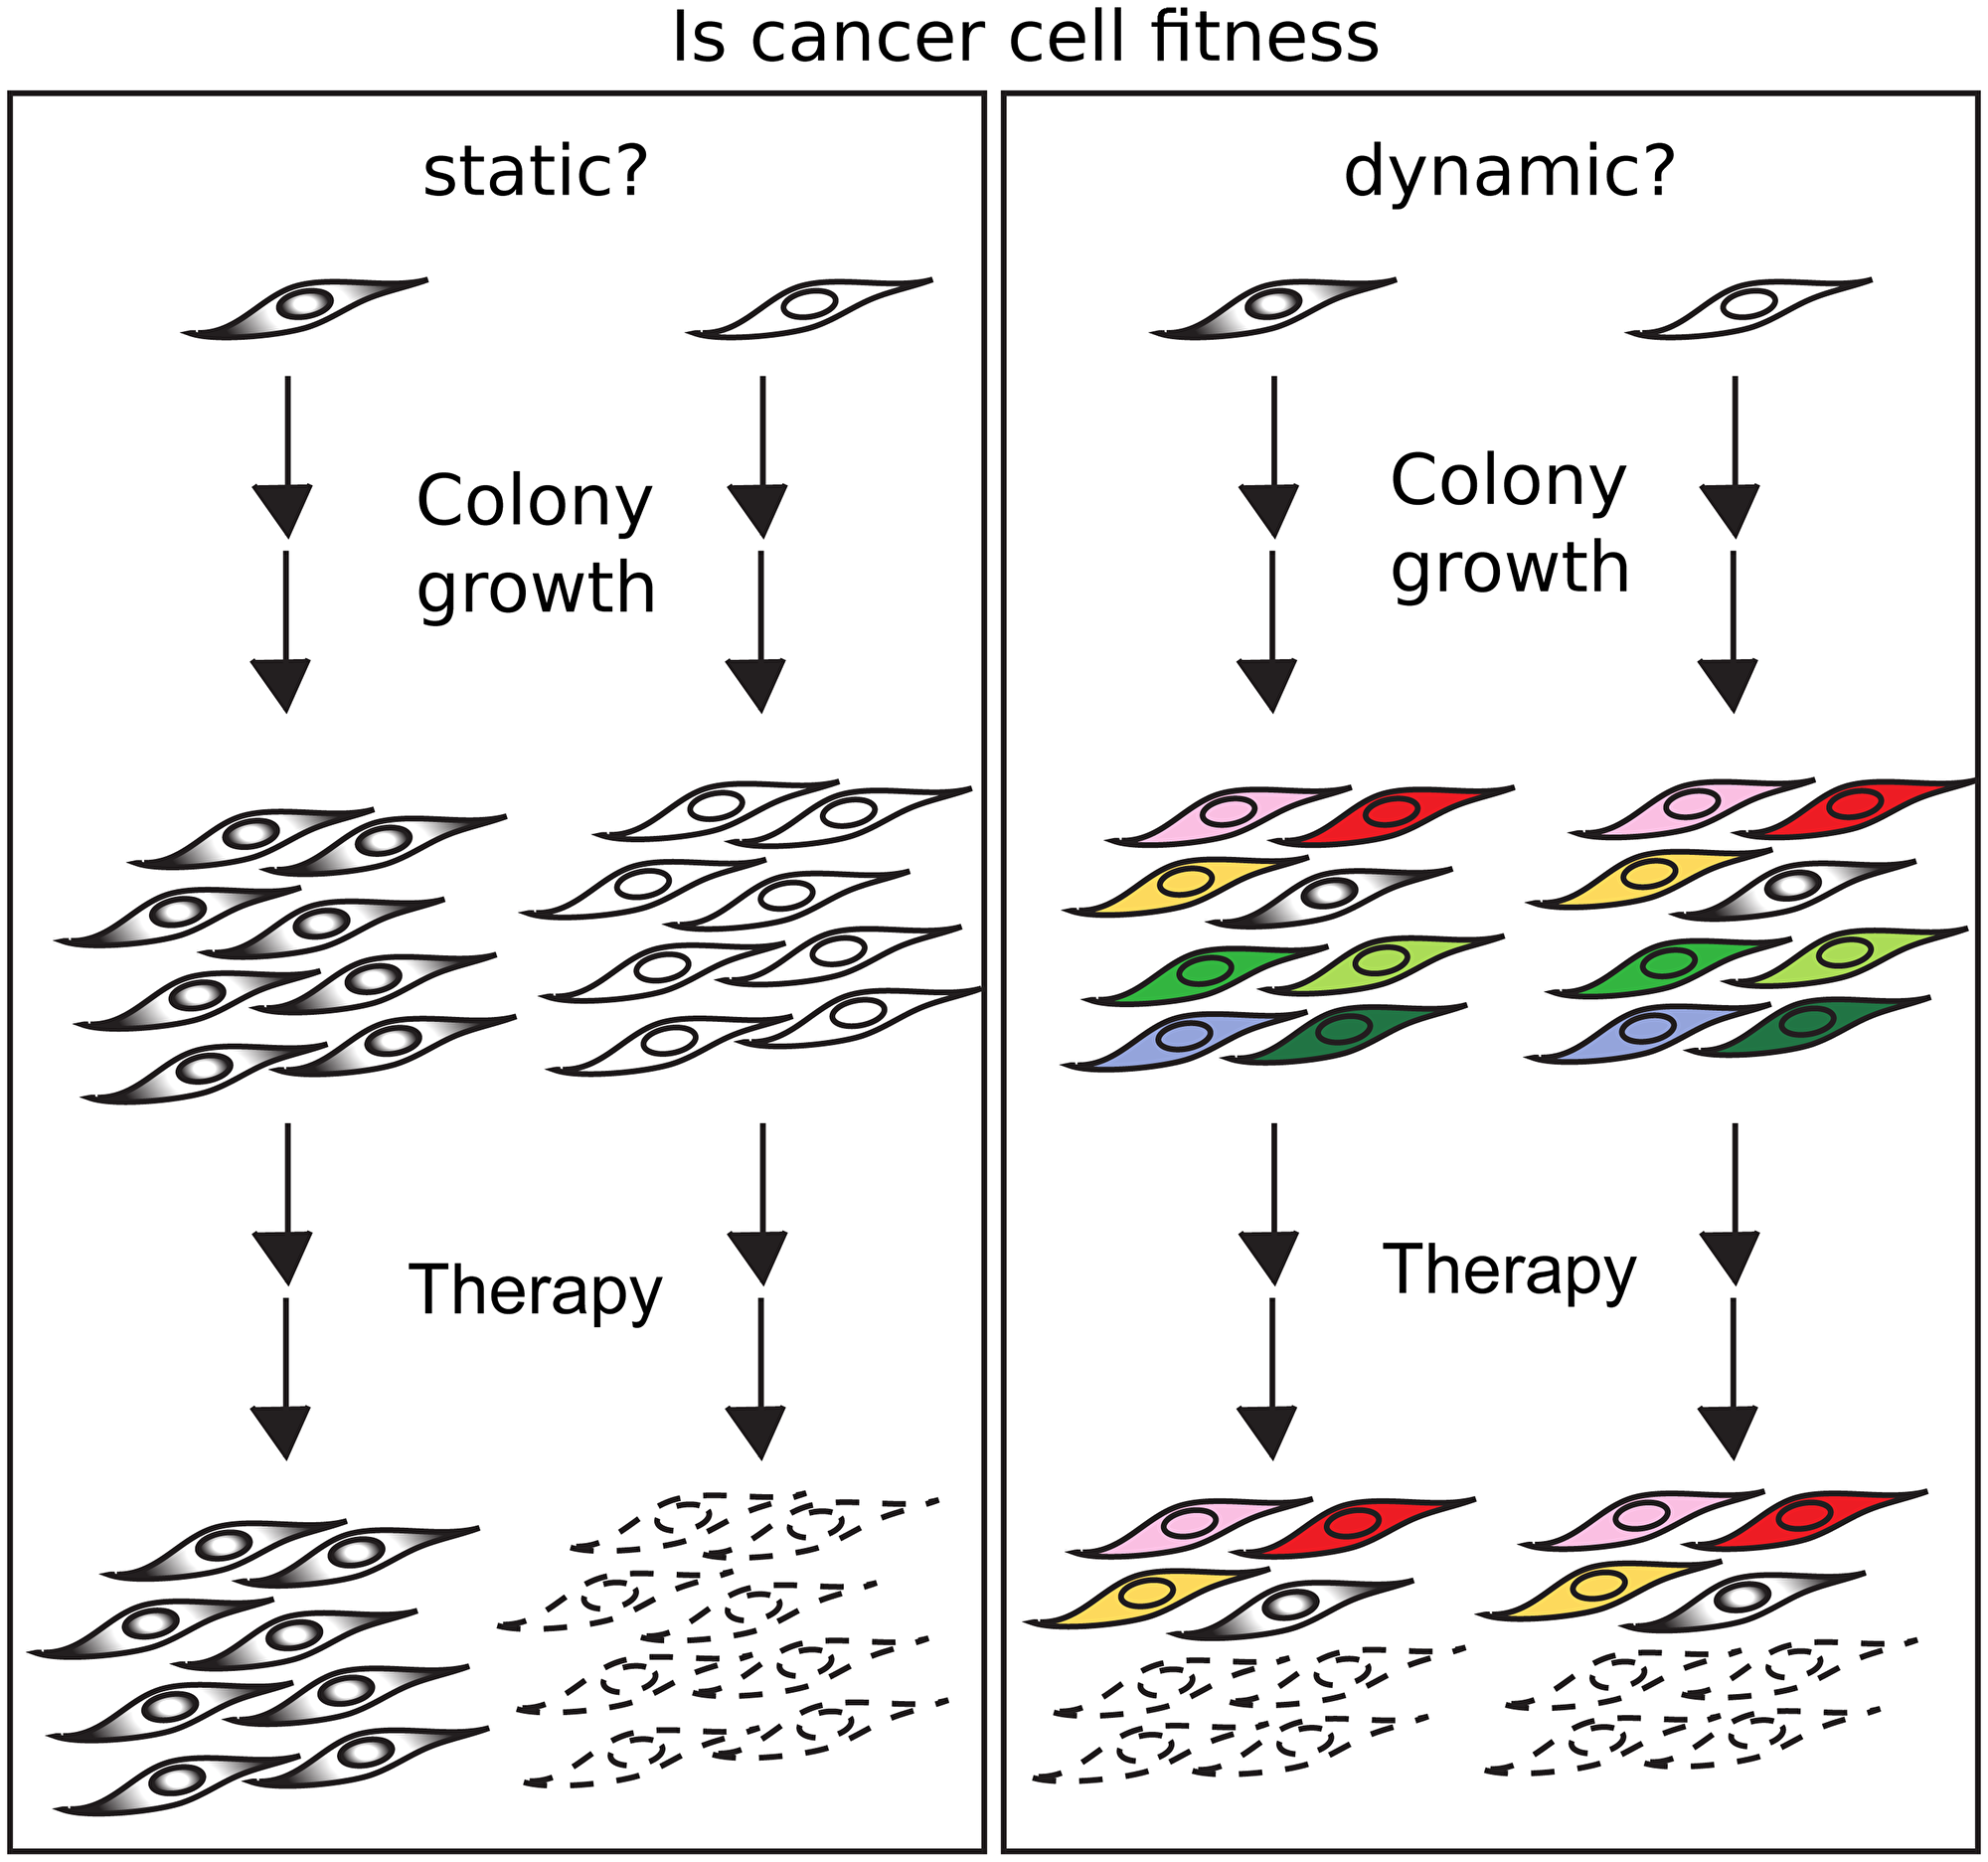 If fitness is conserved, cells with high and low fitness will generate colonies which will be resistant or sensitive to a therapeutic agent (left).